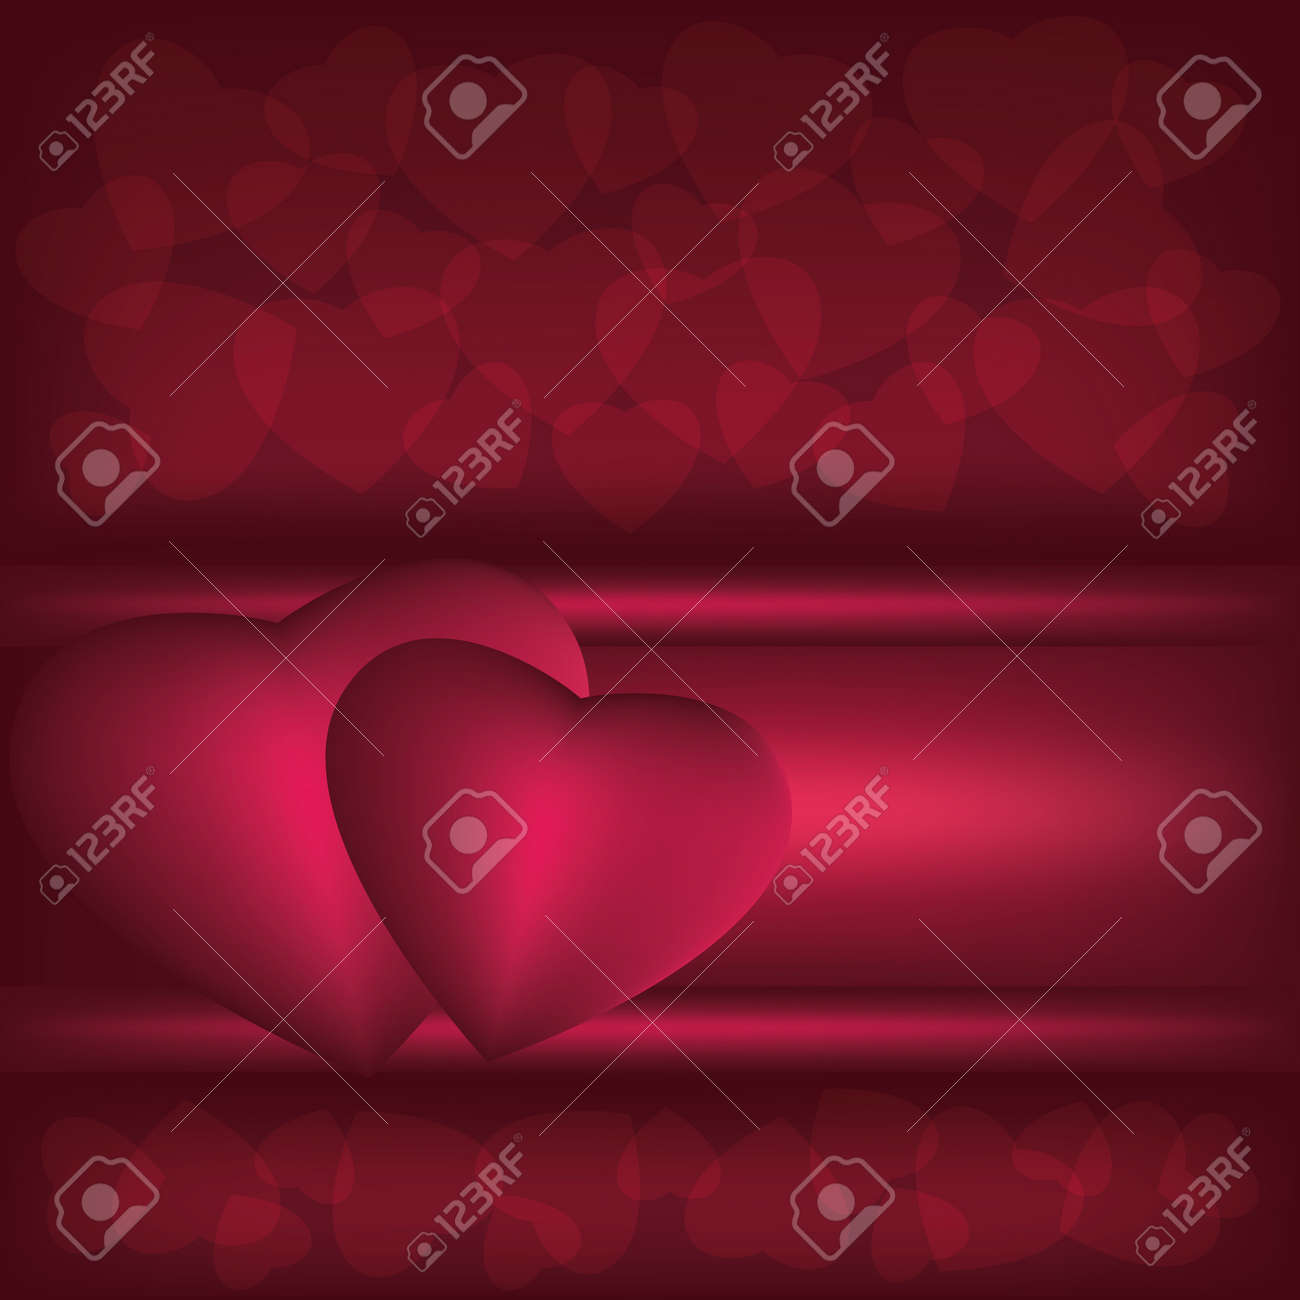 Abstract  dark red background with hearts, vector illustration Stock Vector - 11987063